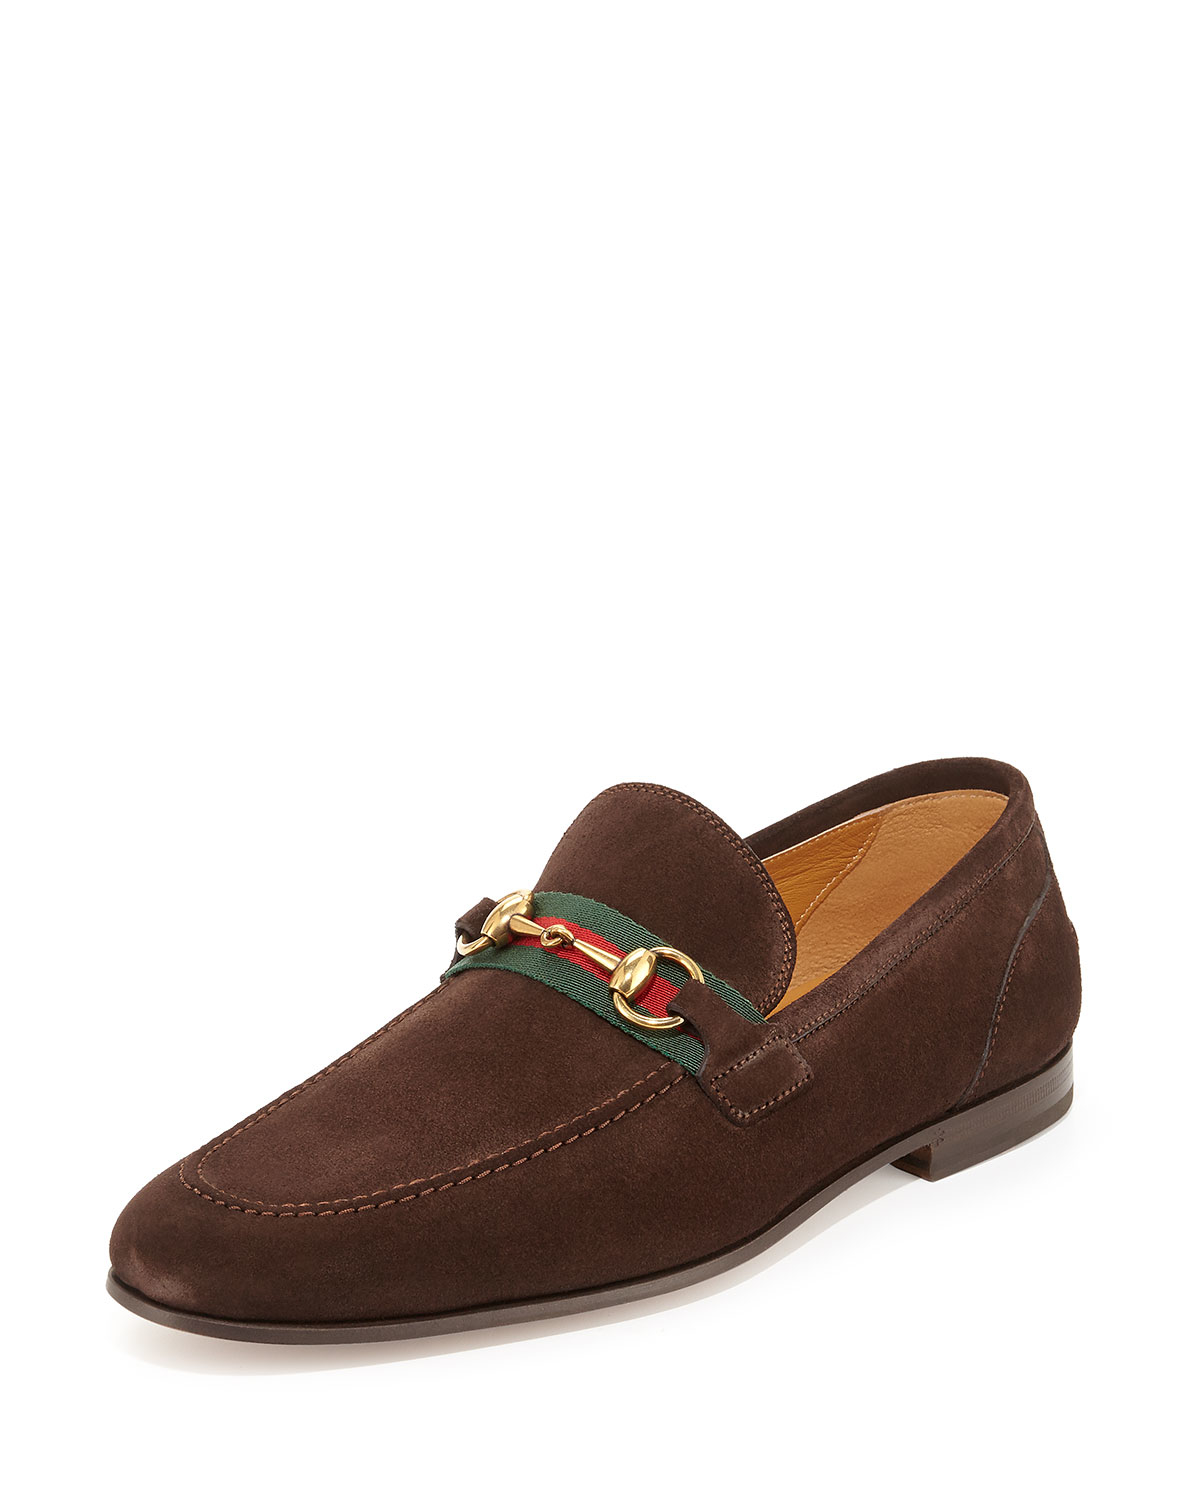 Gucci Driving Shoes Blue